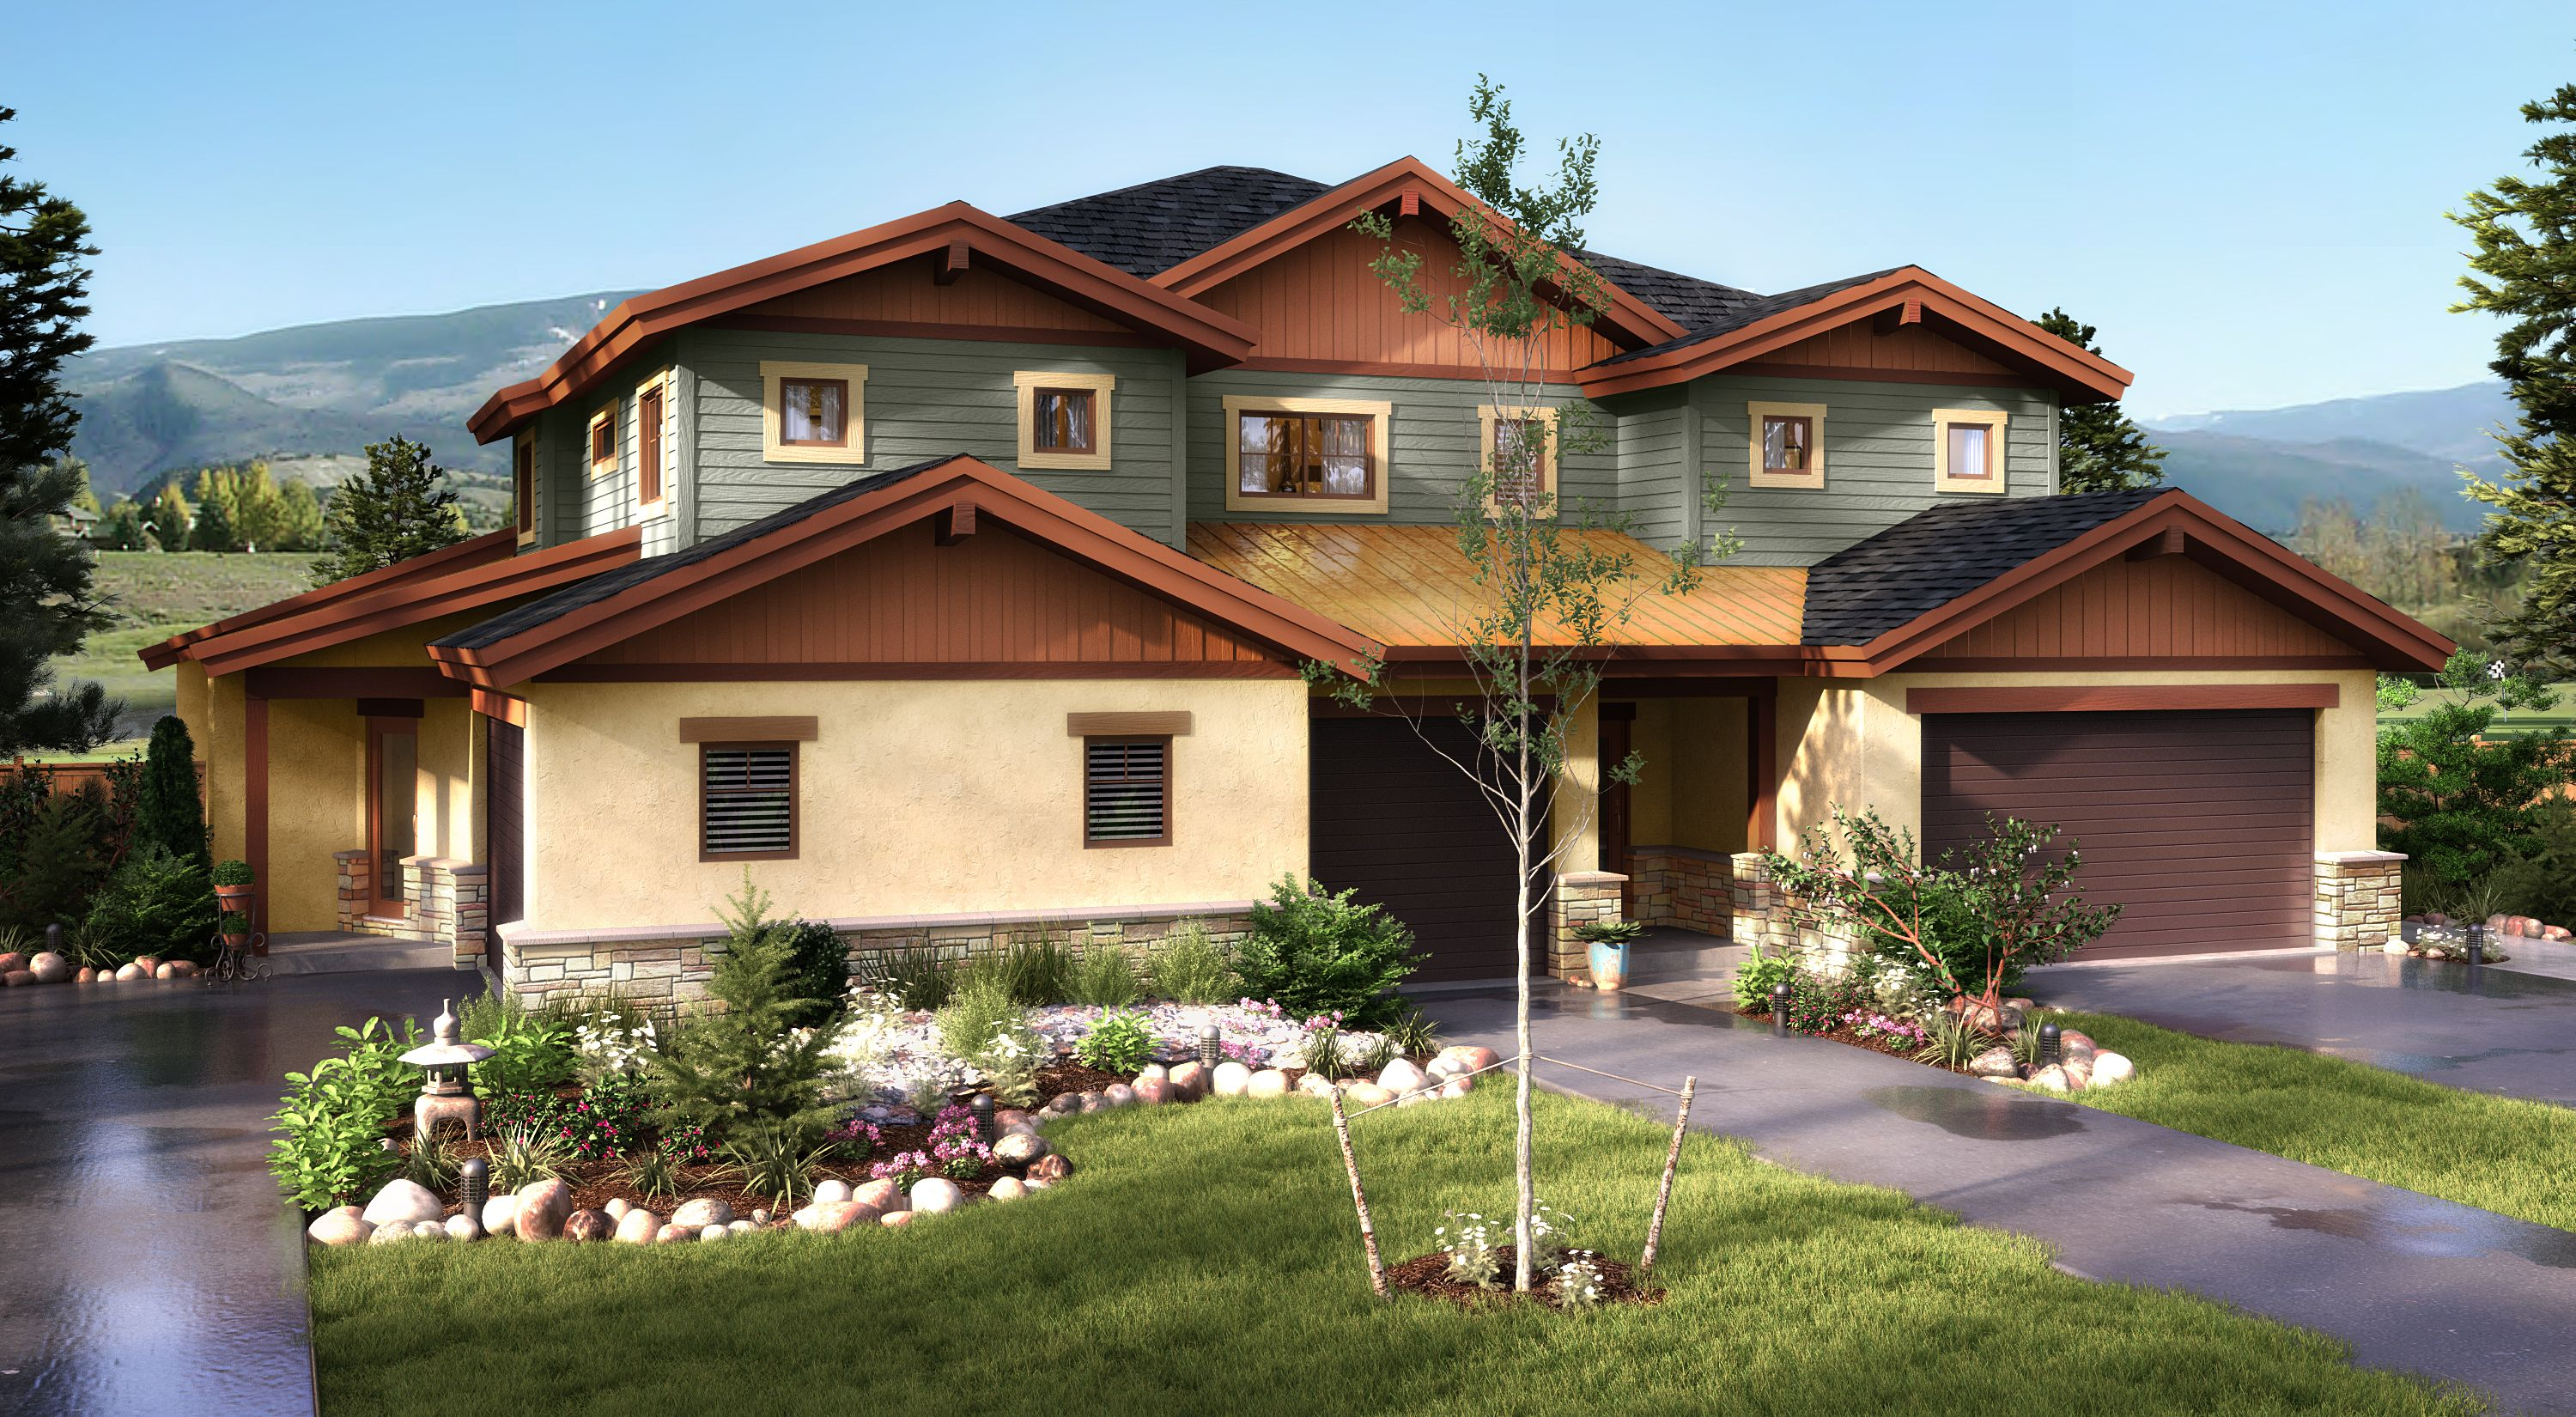 New home construction plans in summit rocky mountains for Summit county home builders